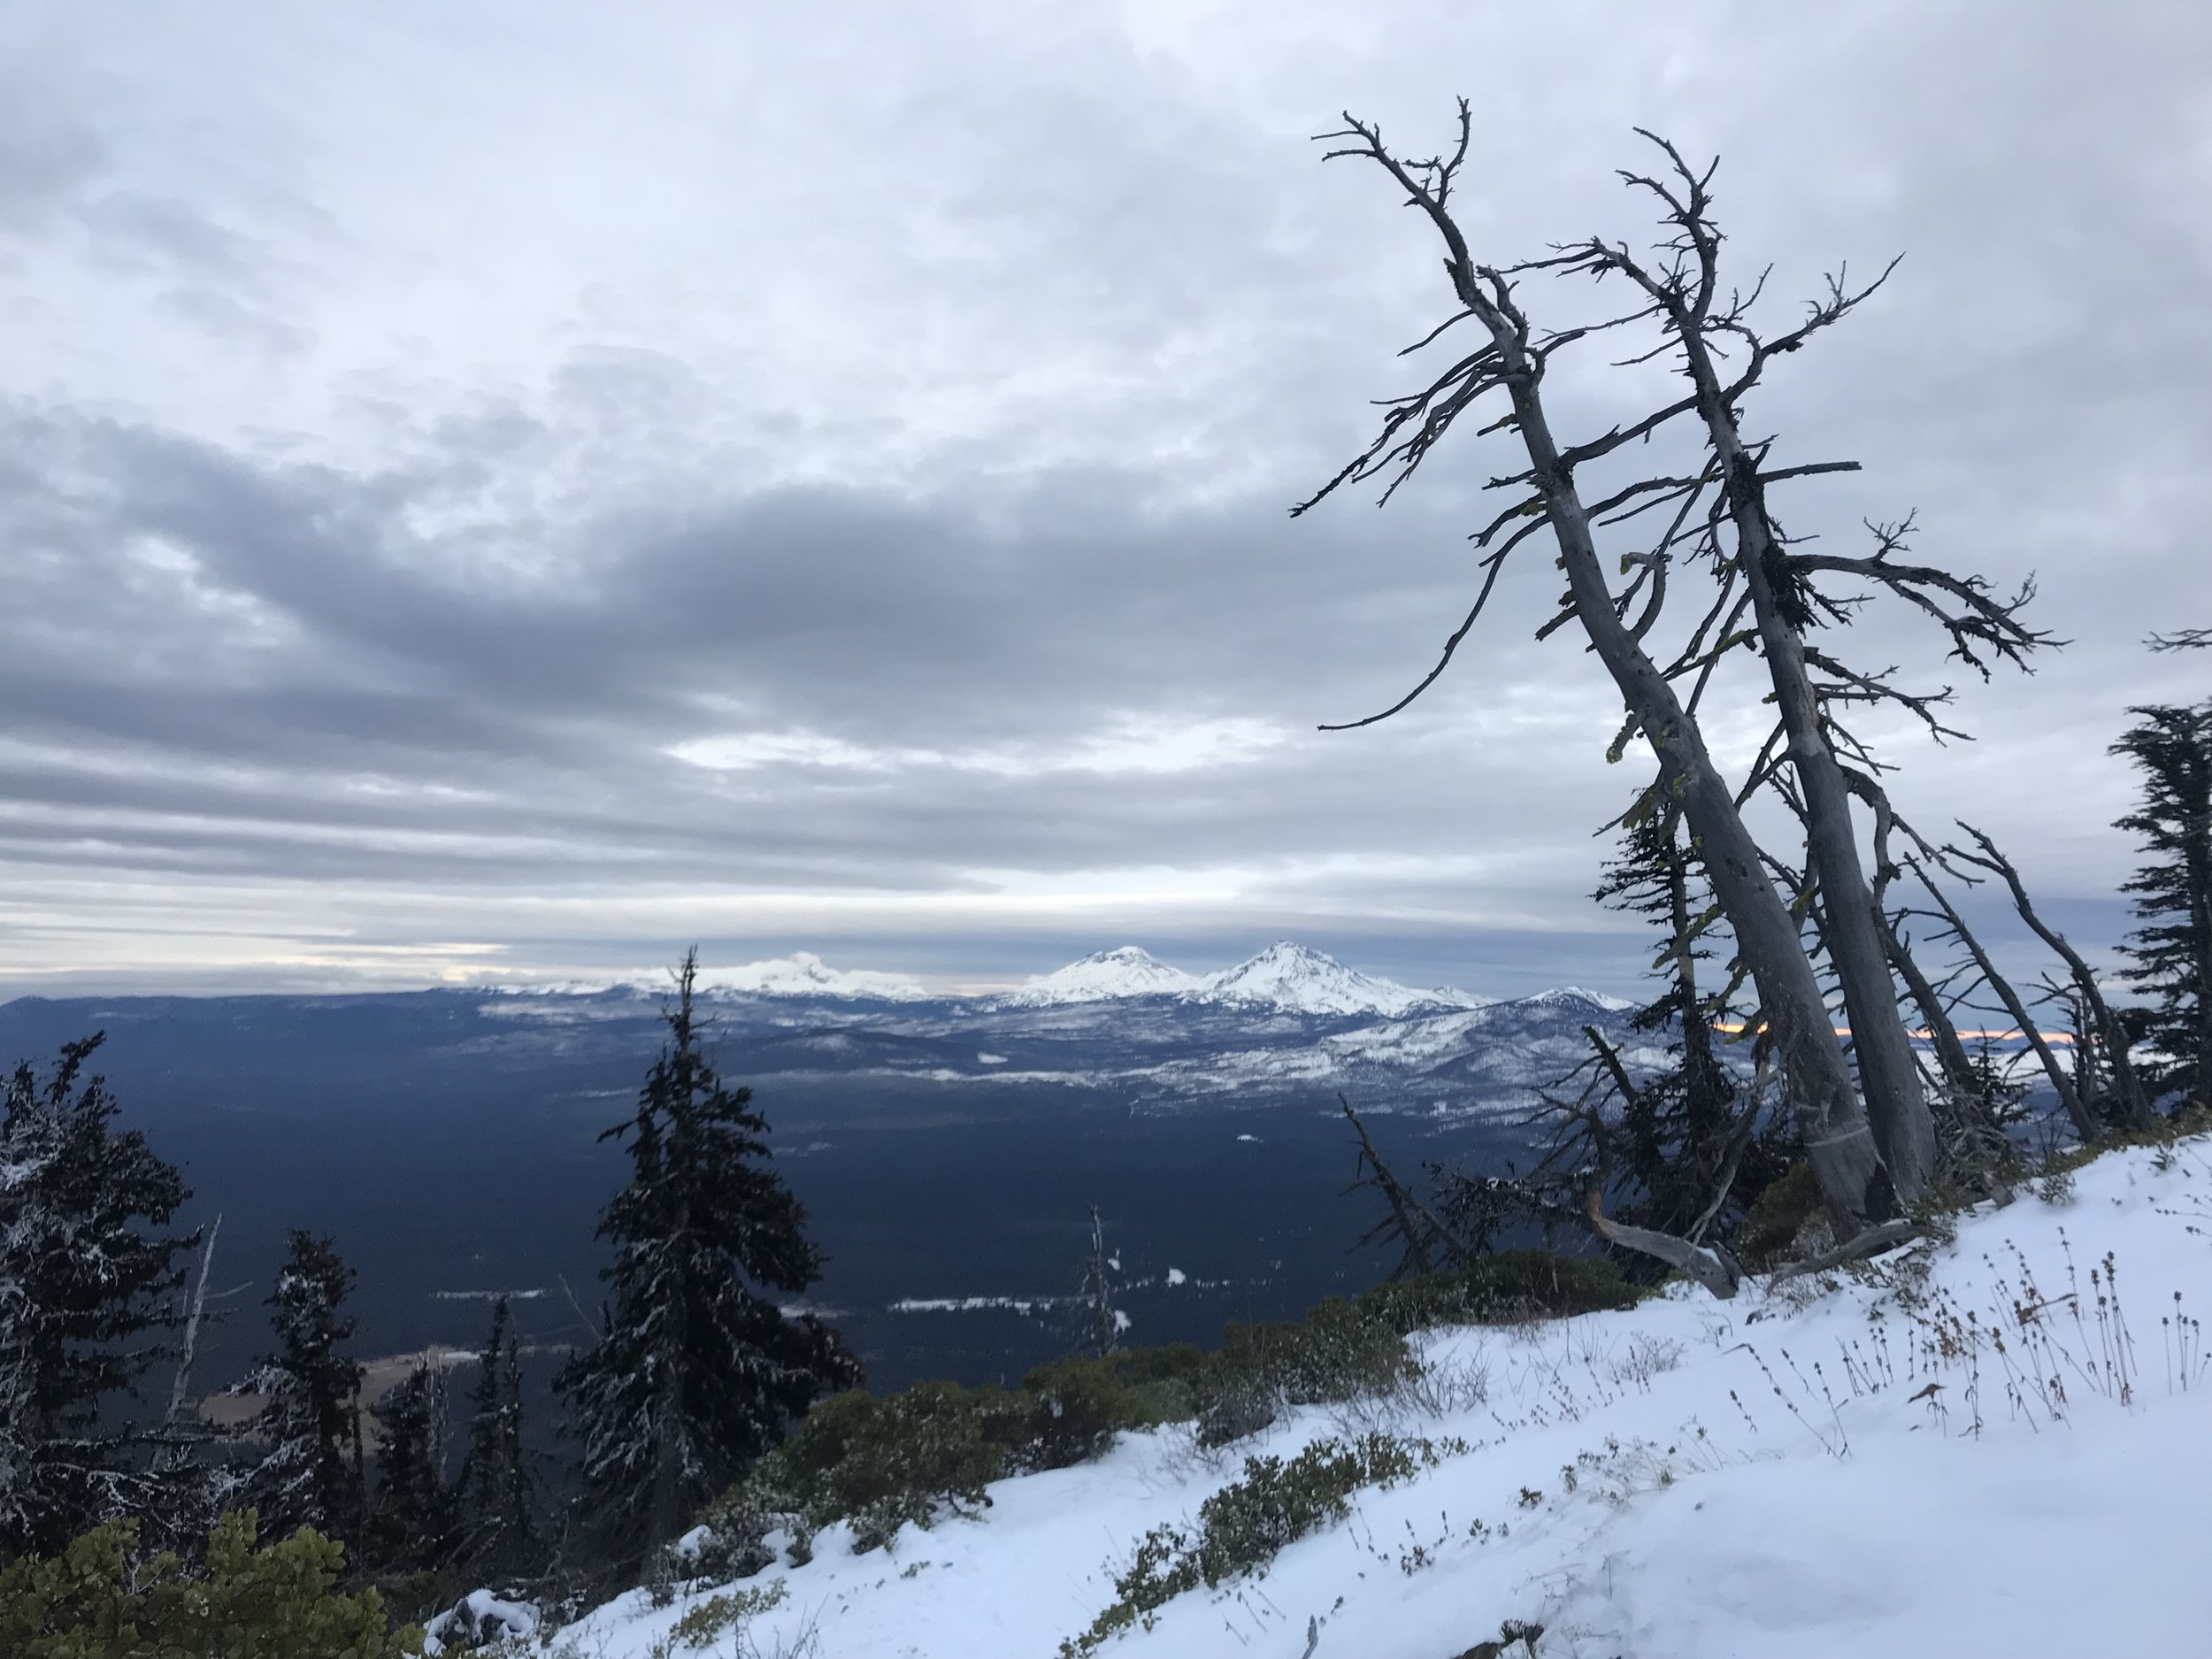 View of the Three Sisters mountain range from the top of Black Butte.